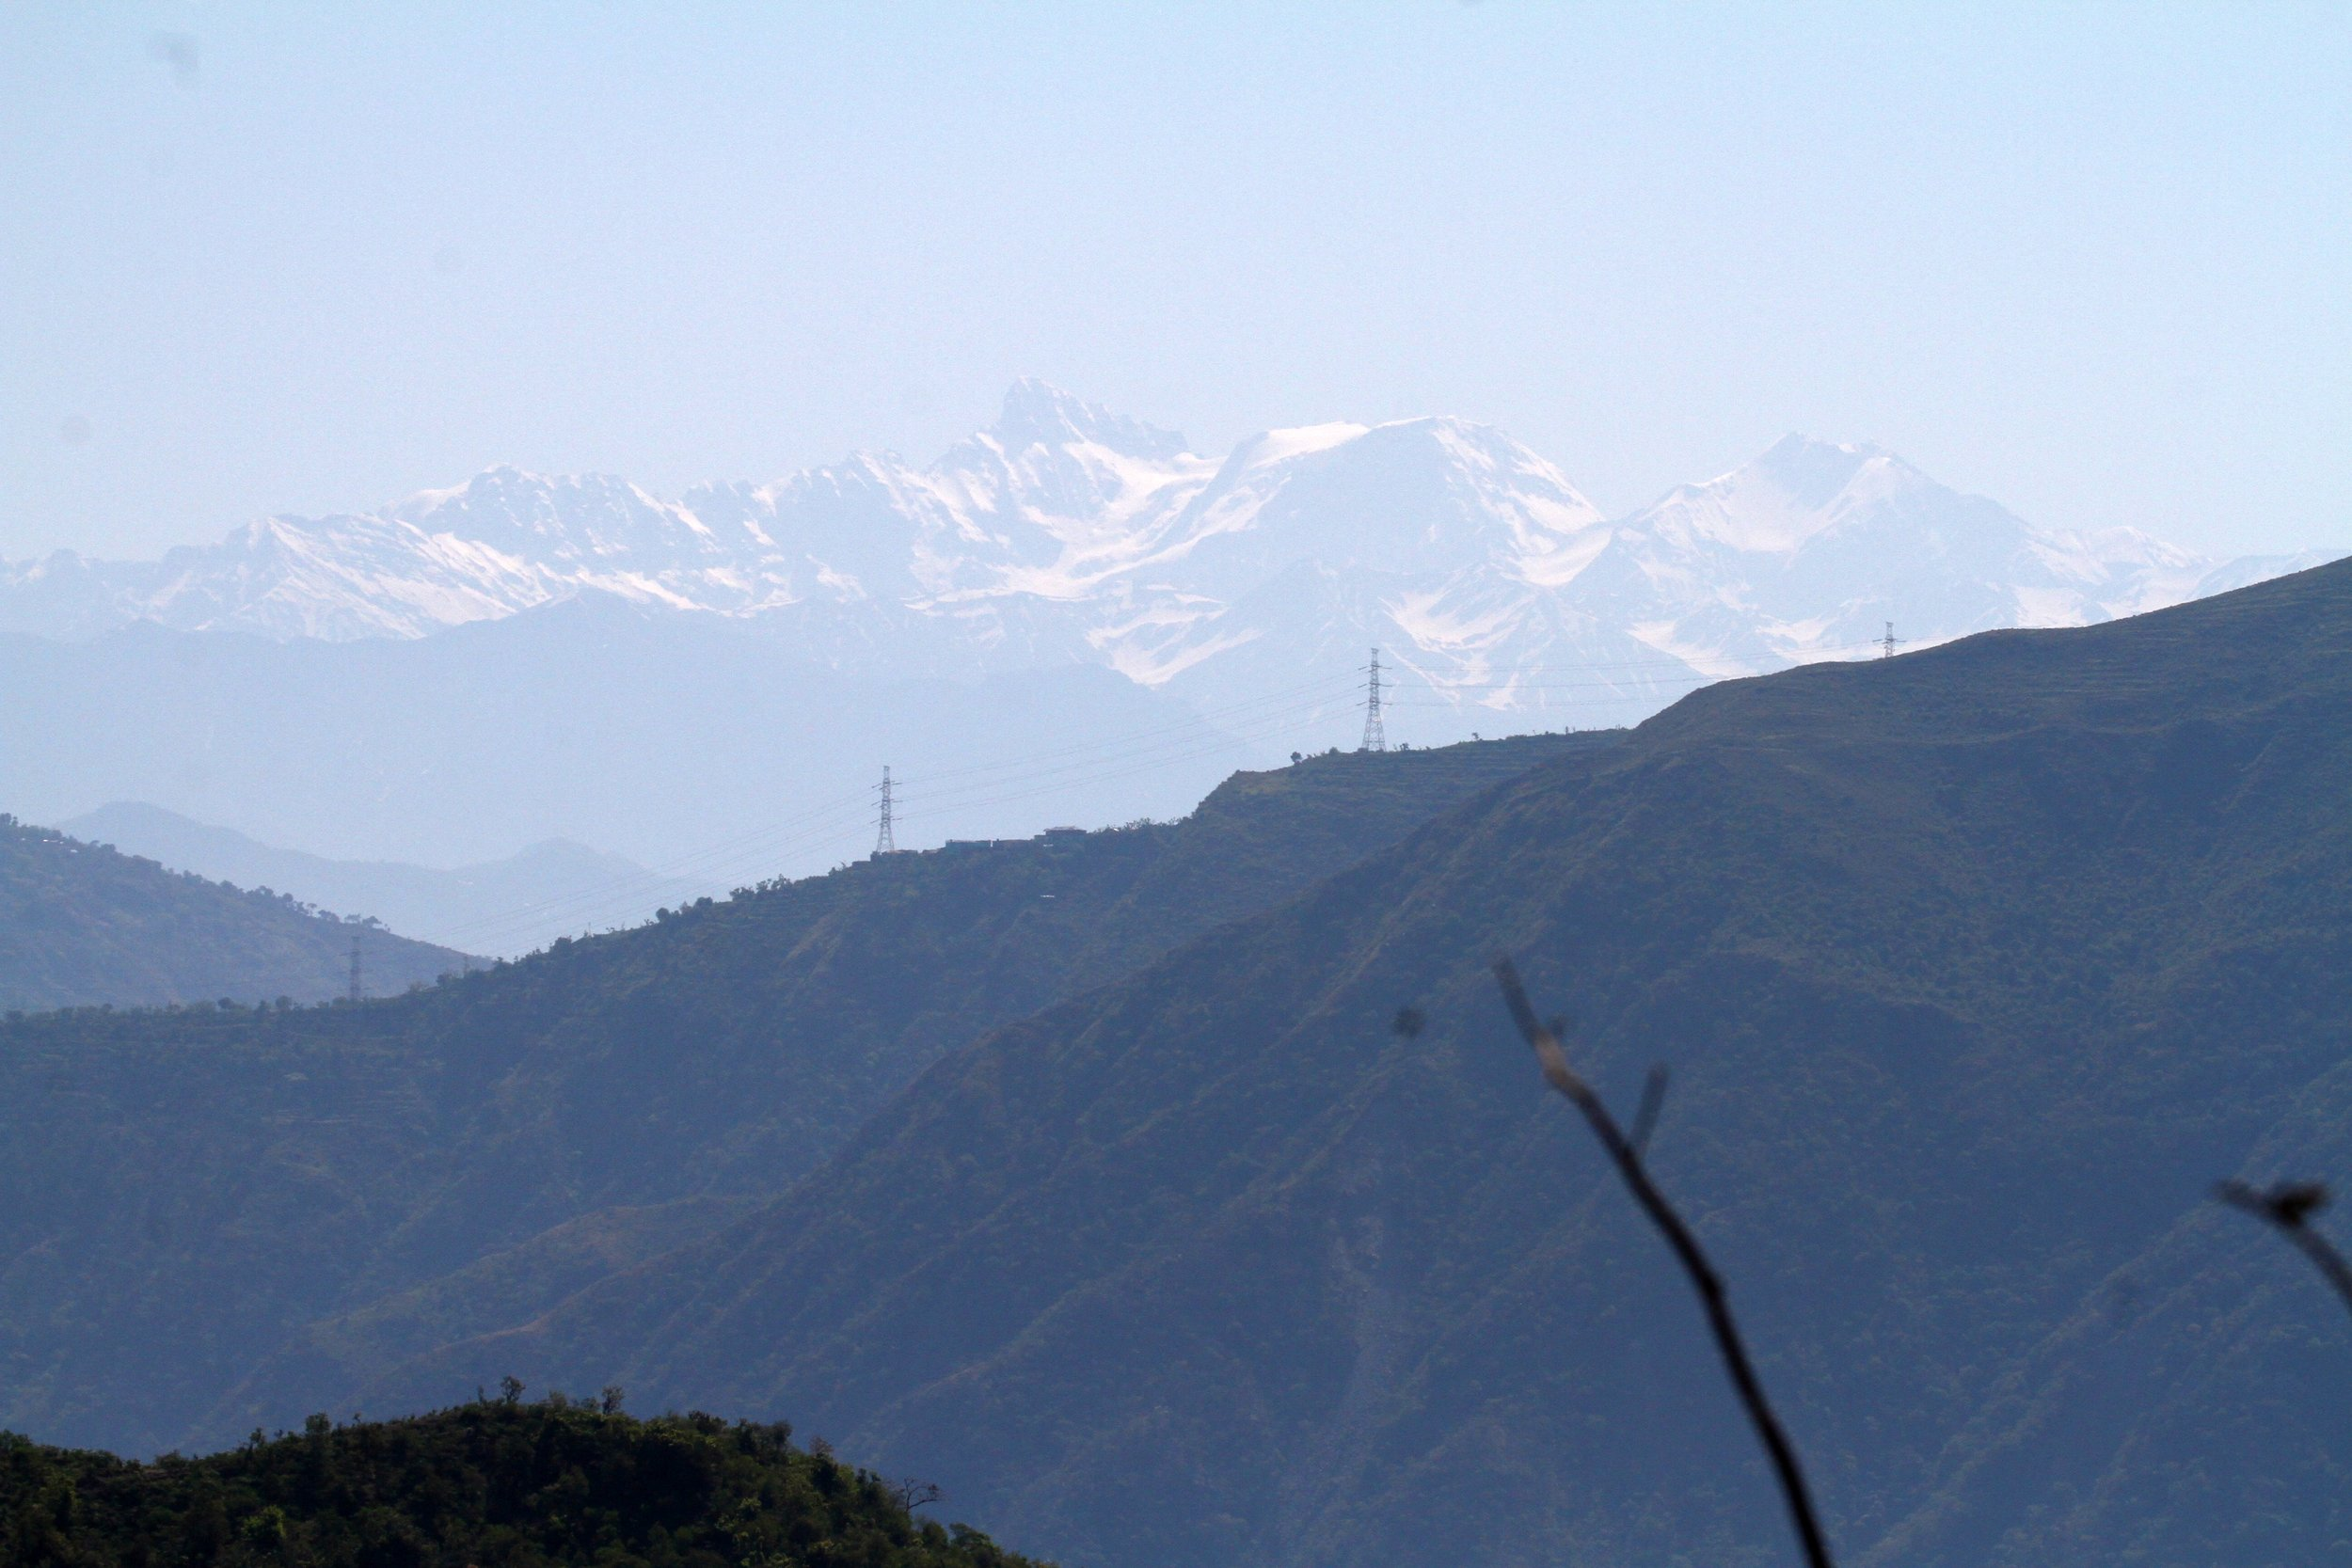 The Hidden Himalayas as they start to appear.